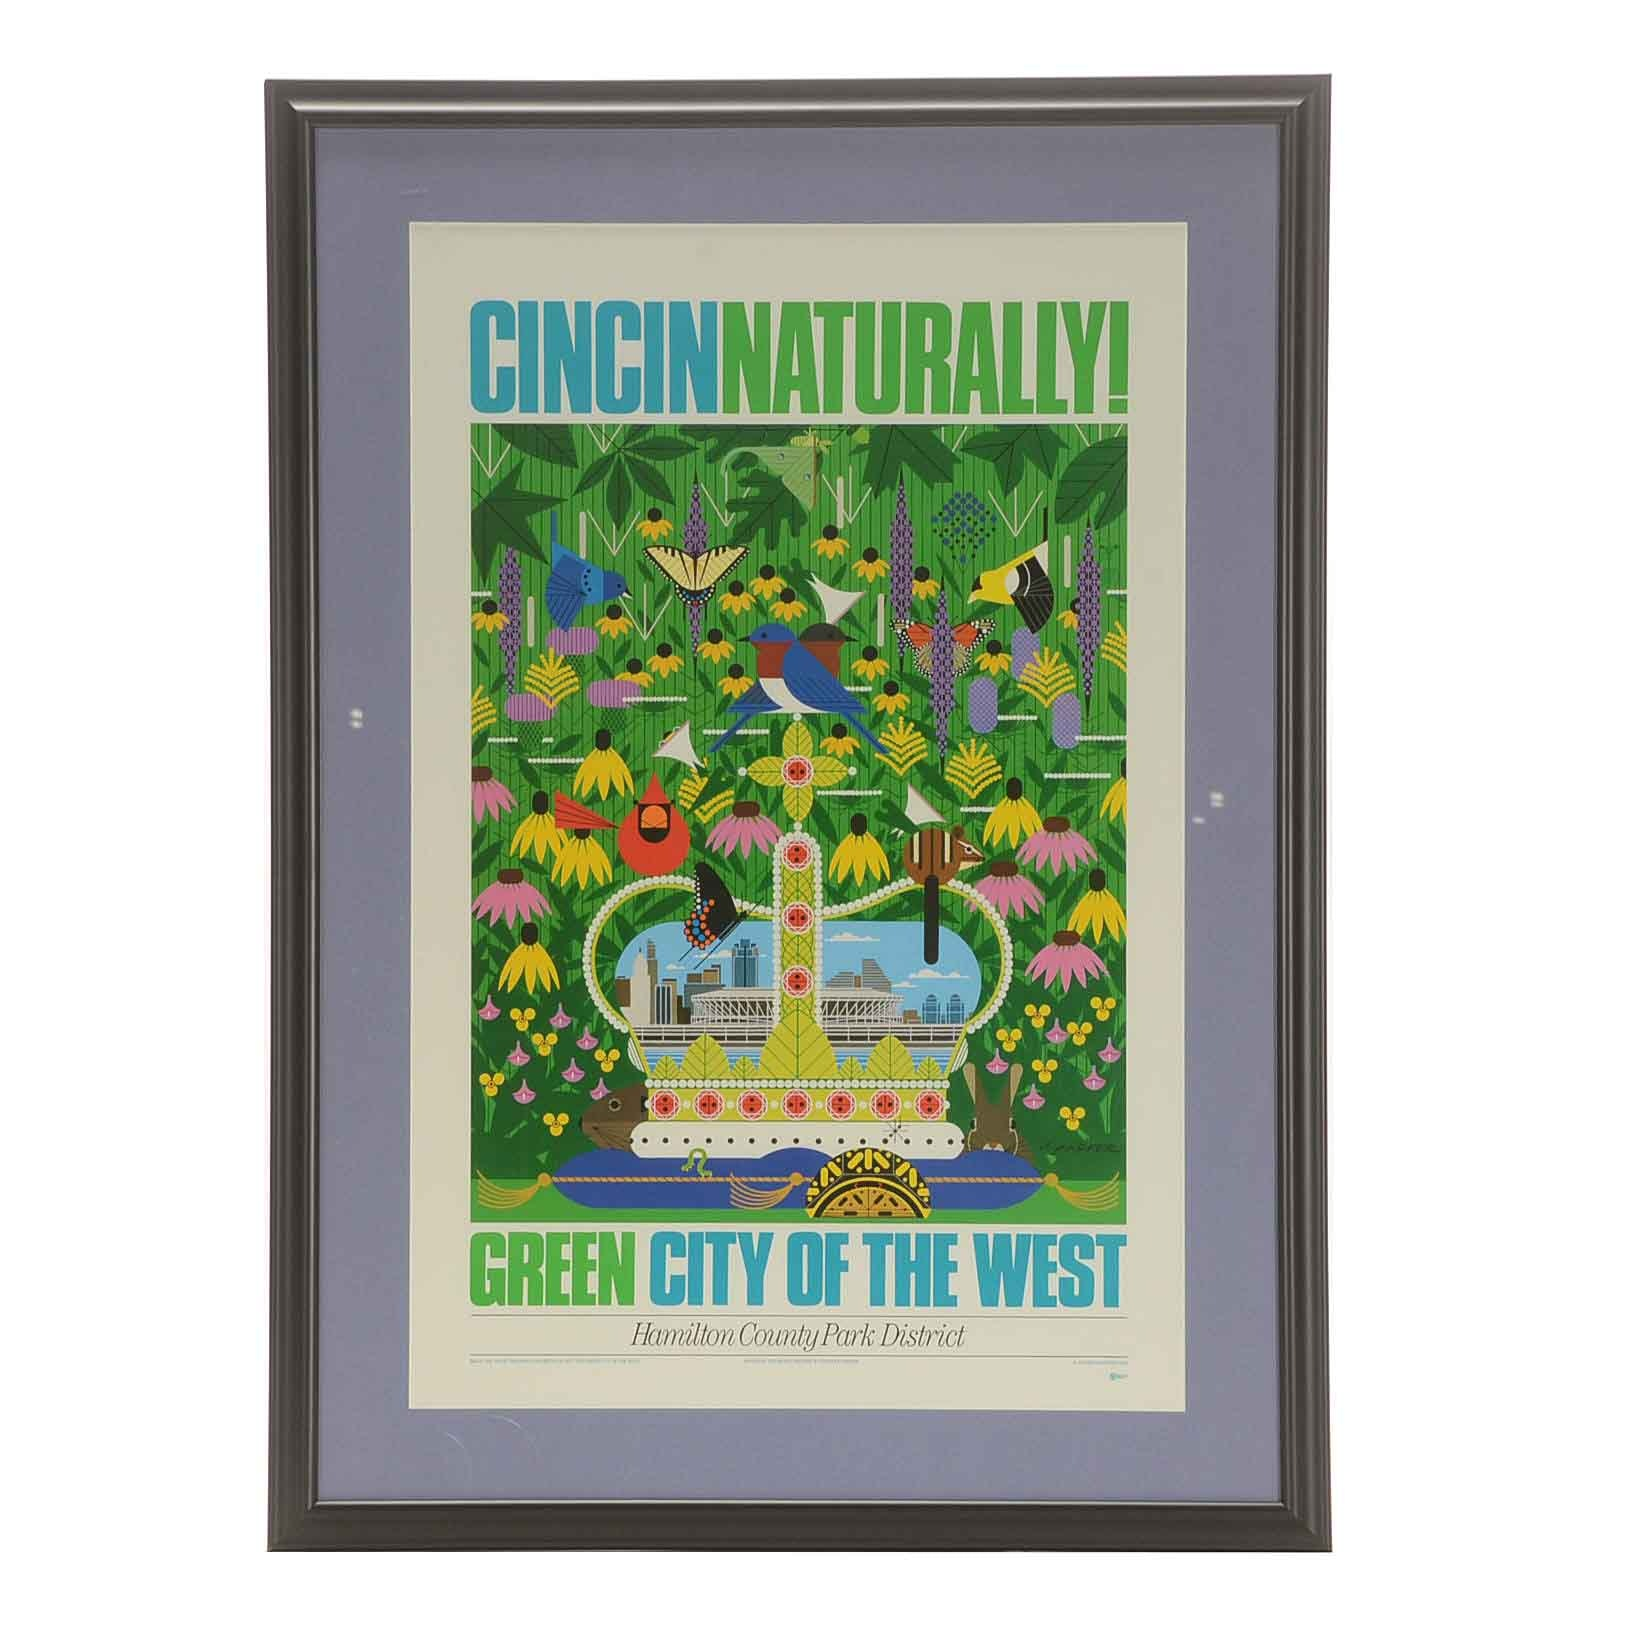 Charley Harper Offset Lithograph Poster for Hamilton County Parks